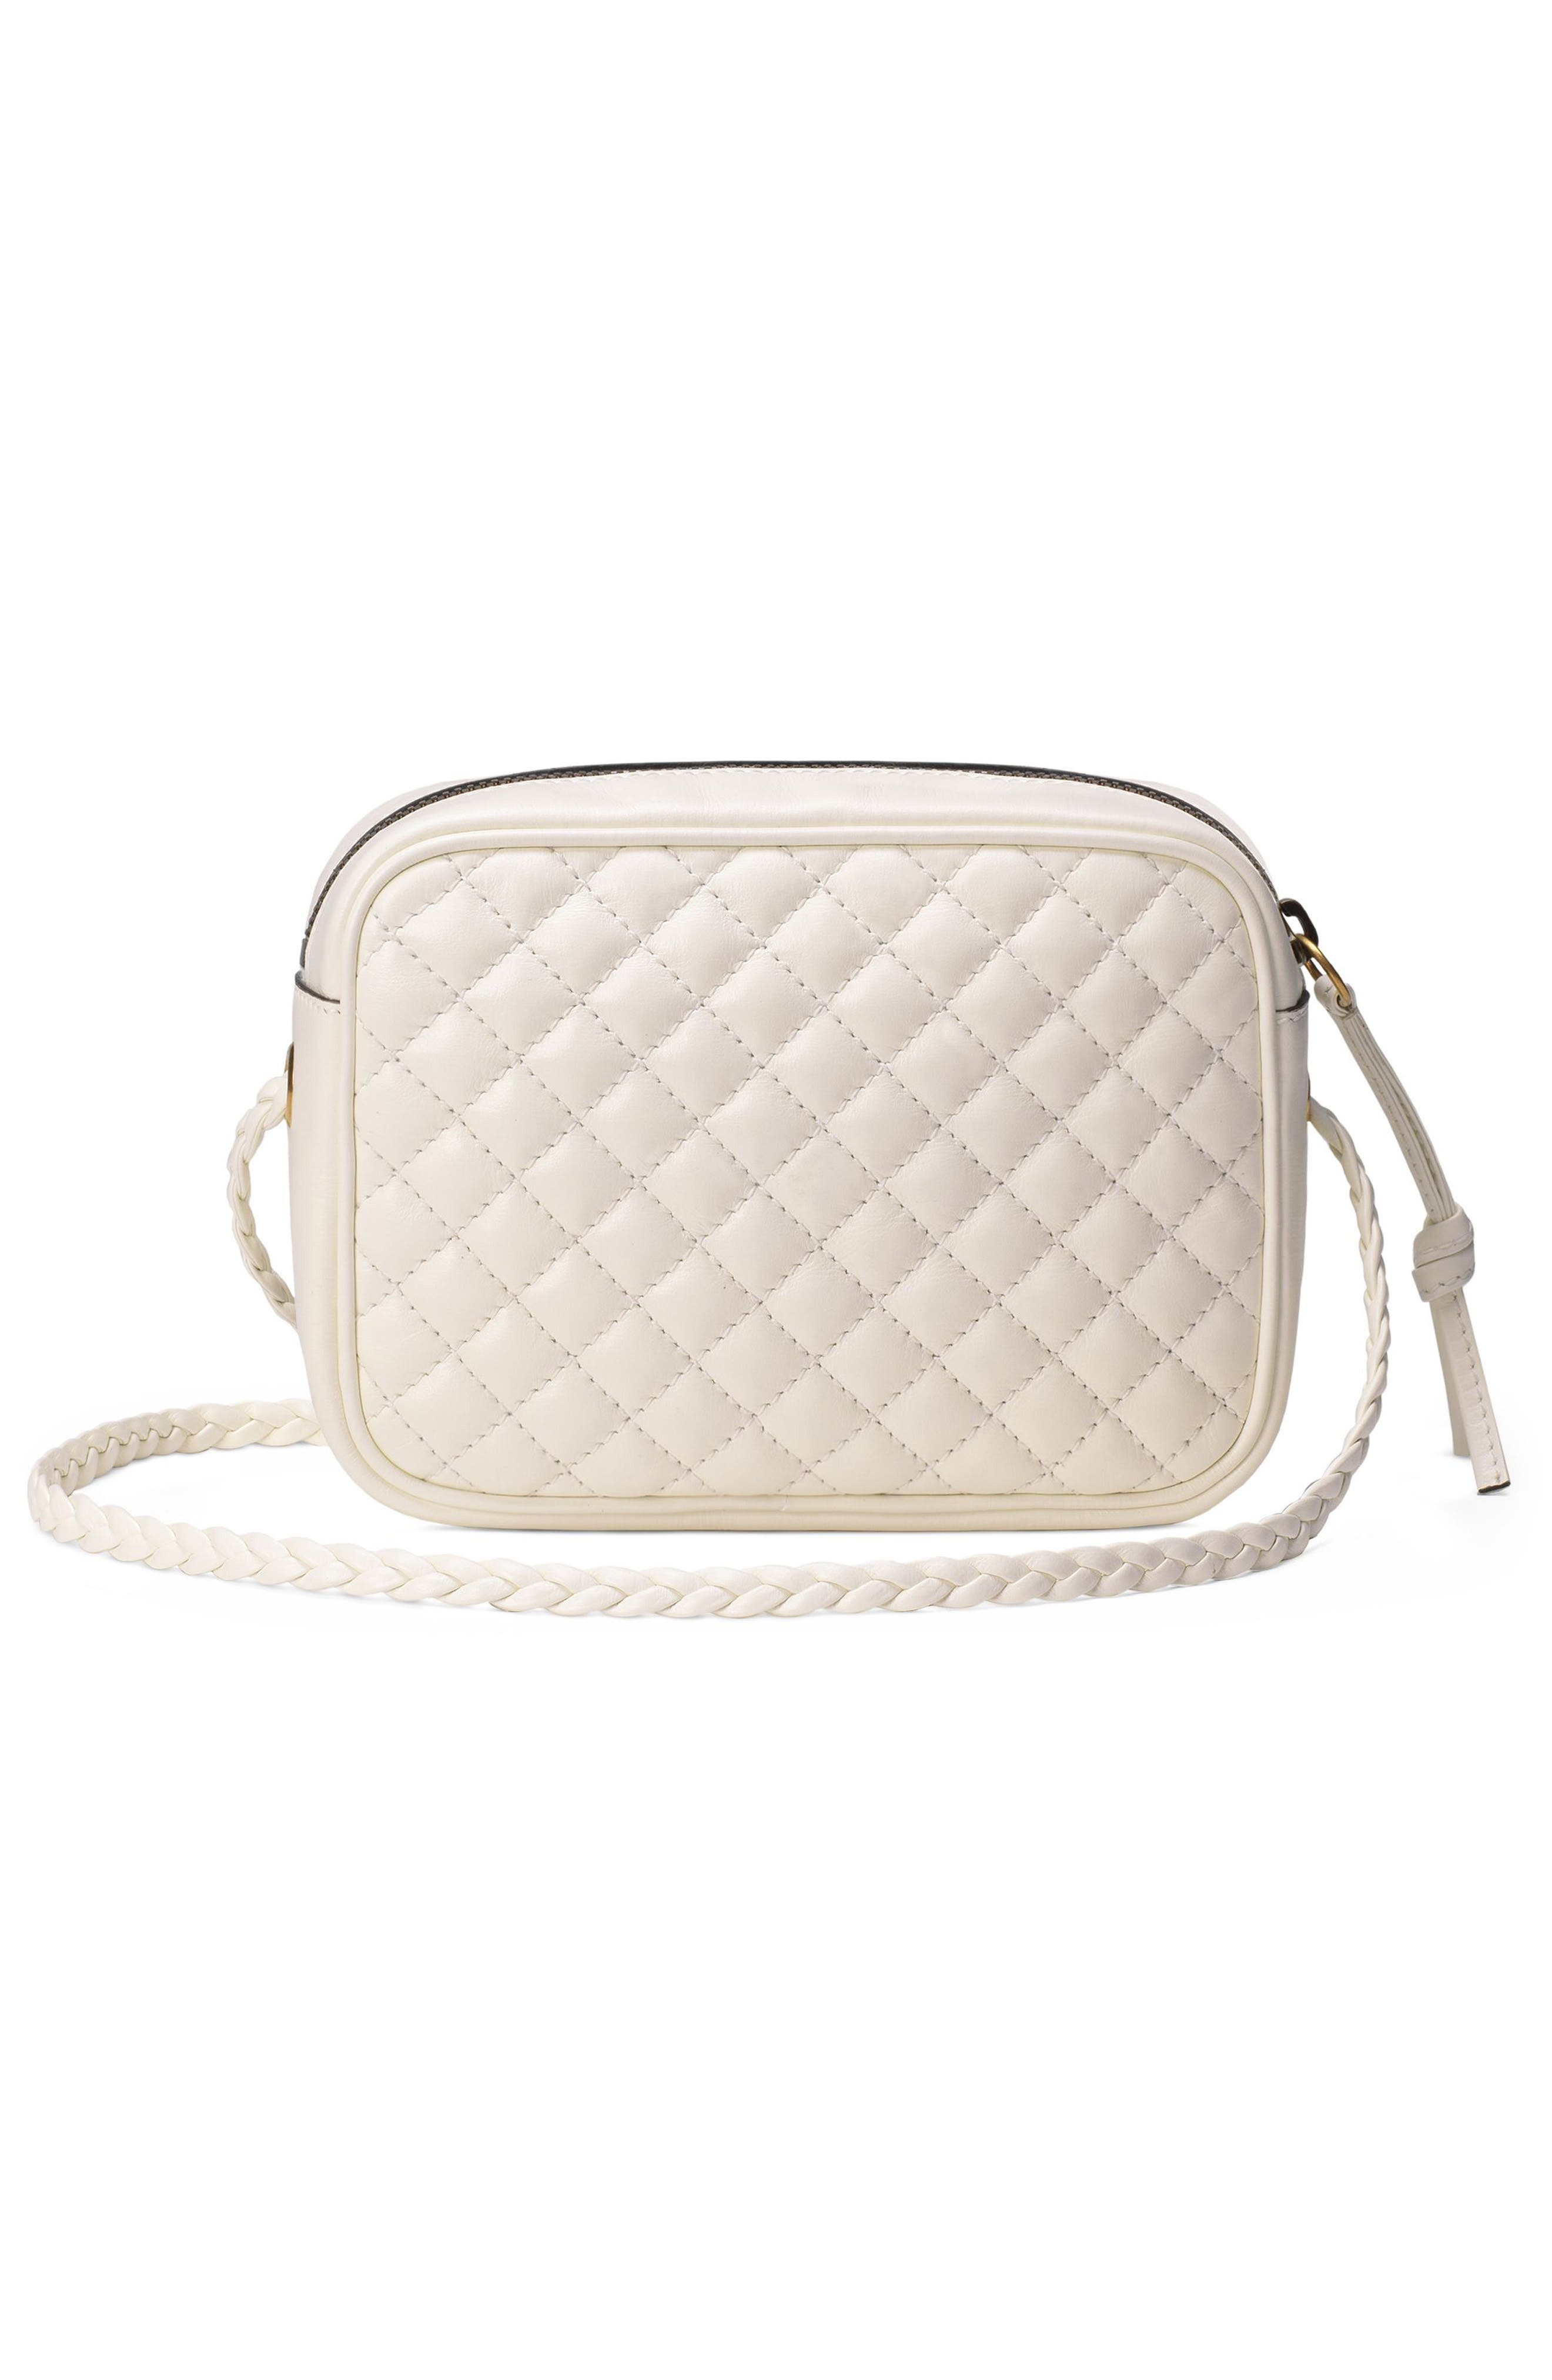 Small Quilted Leather Camera Bag,                             Alternate thumbnail 2, color,                             OFF WHITE/ VERT/ RED